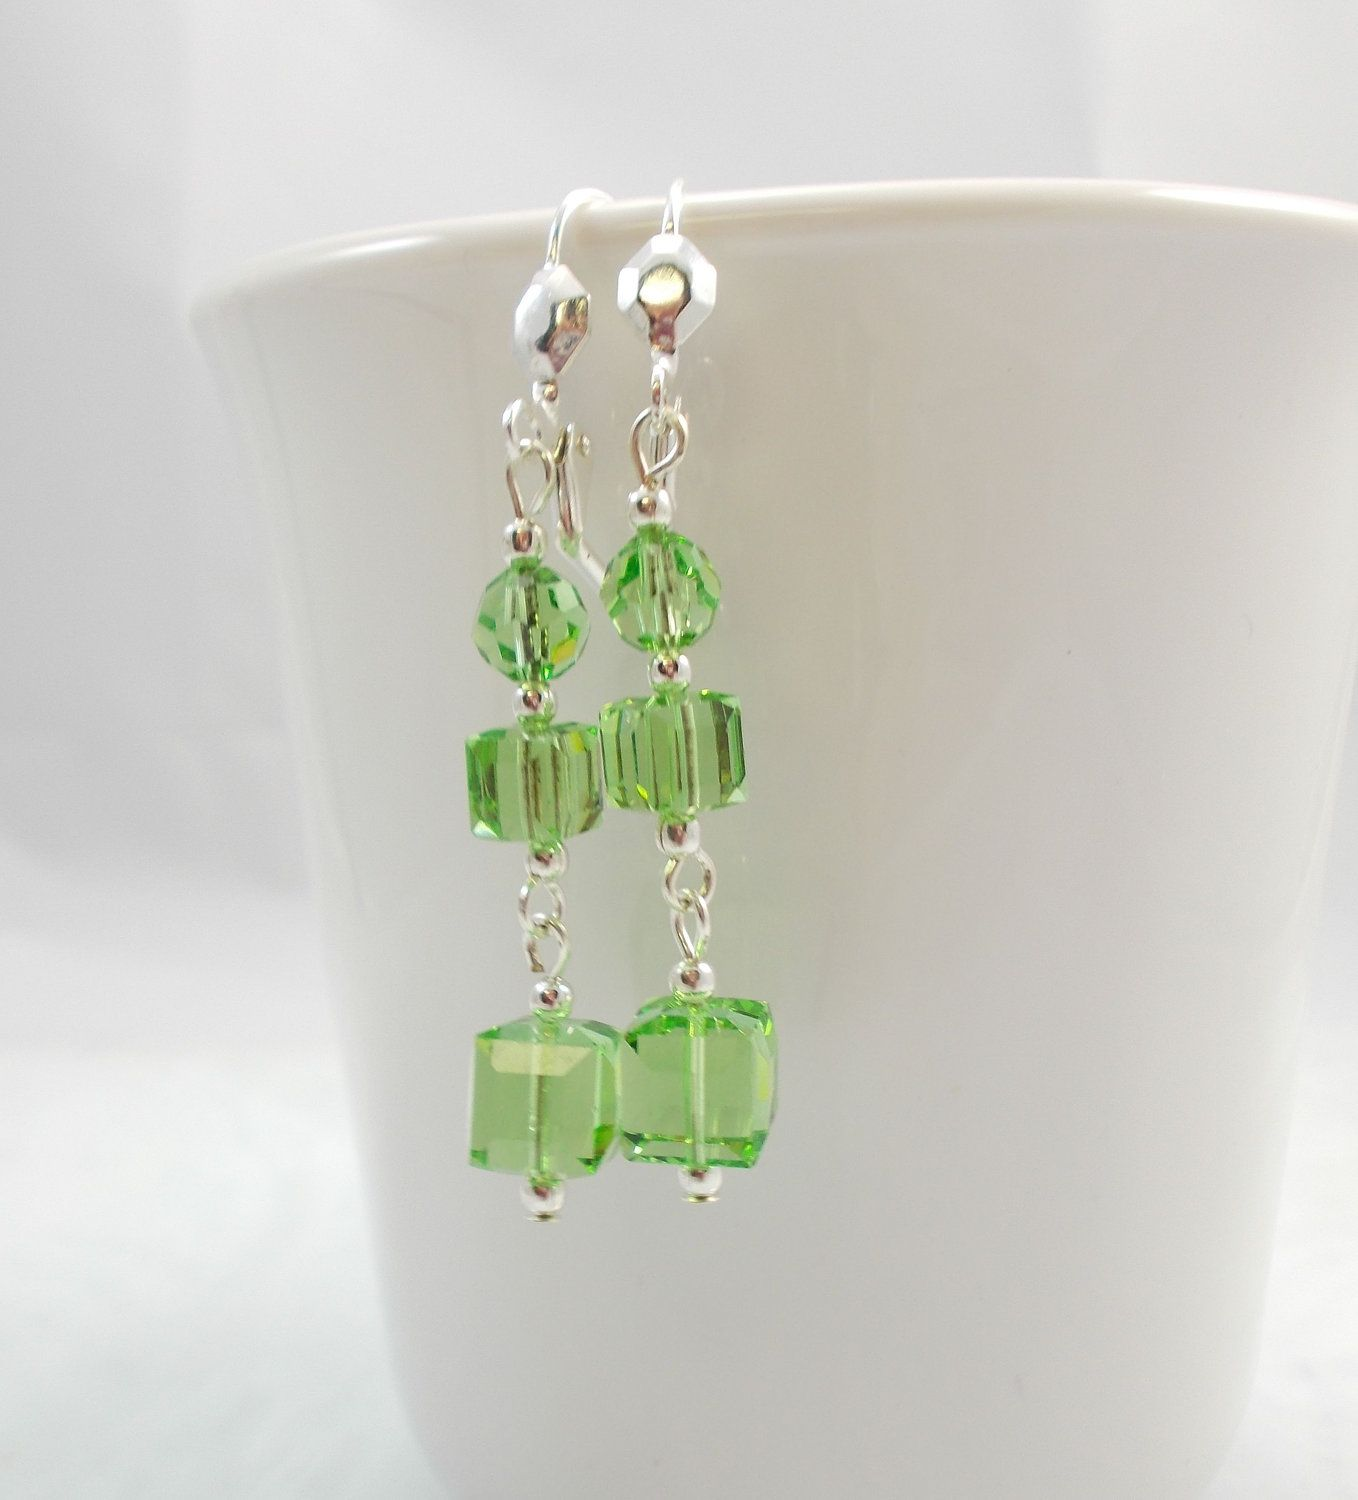 Green Swarovski Crystal Earrings Cube Peridot by kmajewelrydesigns, $22.00